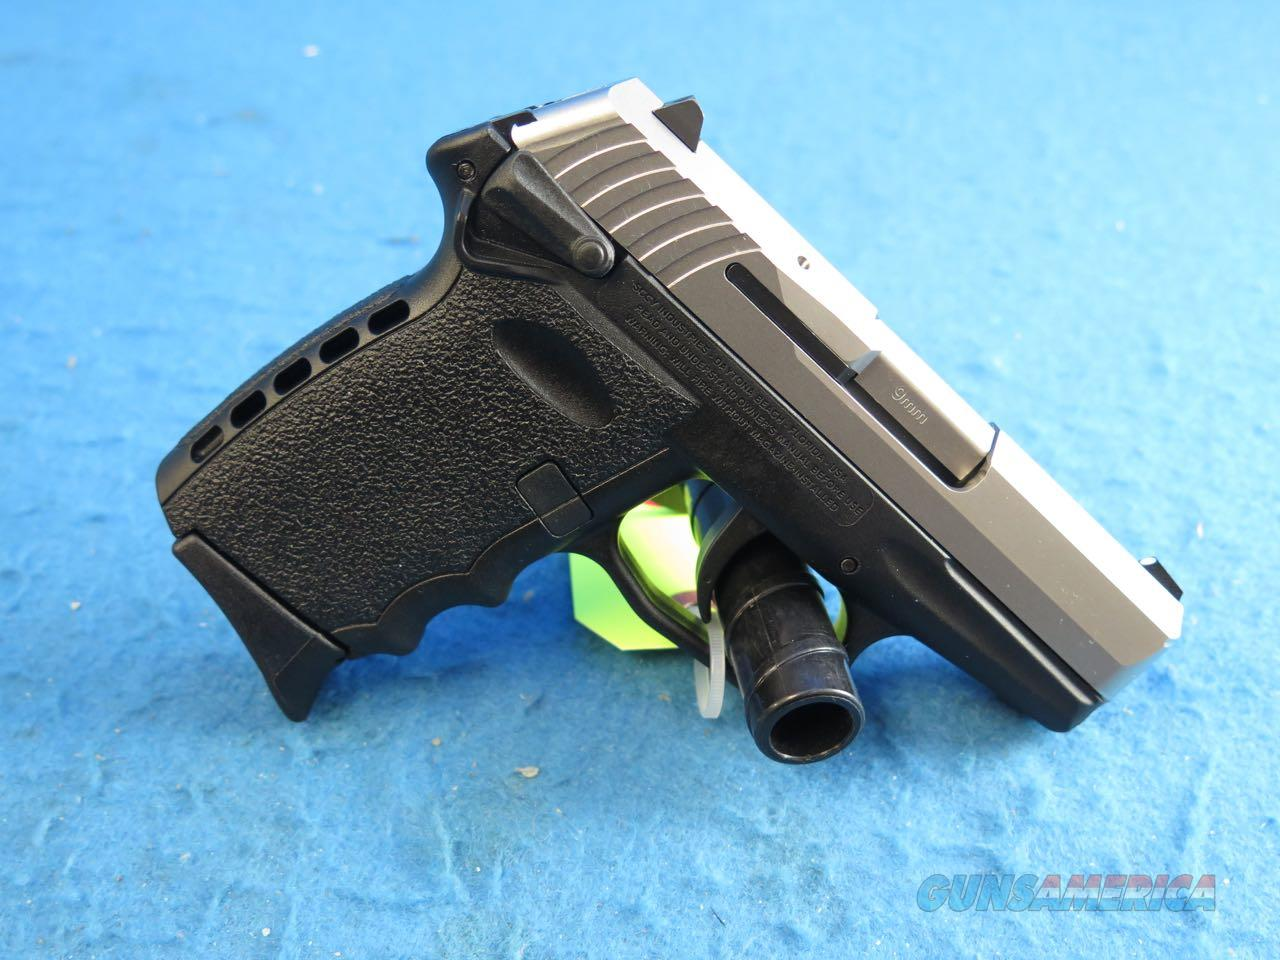 SCCY Model CPX-1 TT 9mm Pistol Black/SS **New**  Guns > Pistols > SCCY Pistols > CPX1